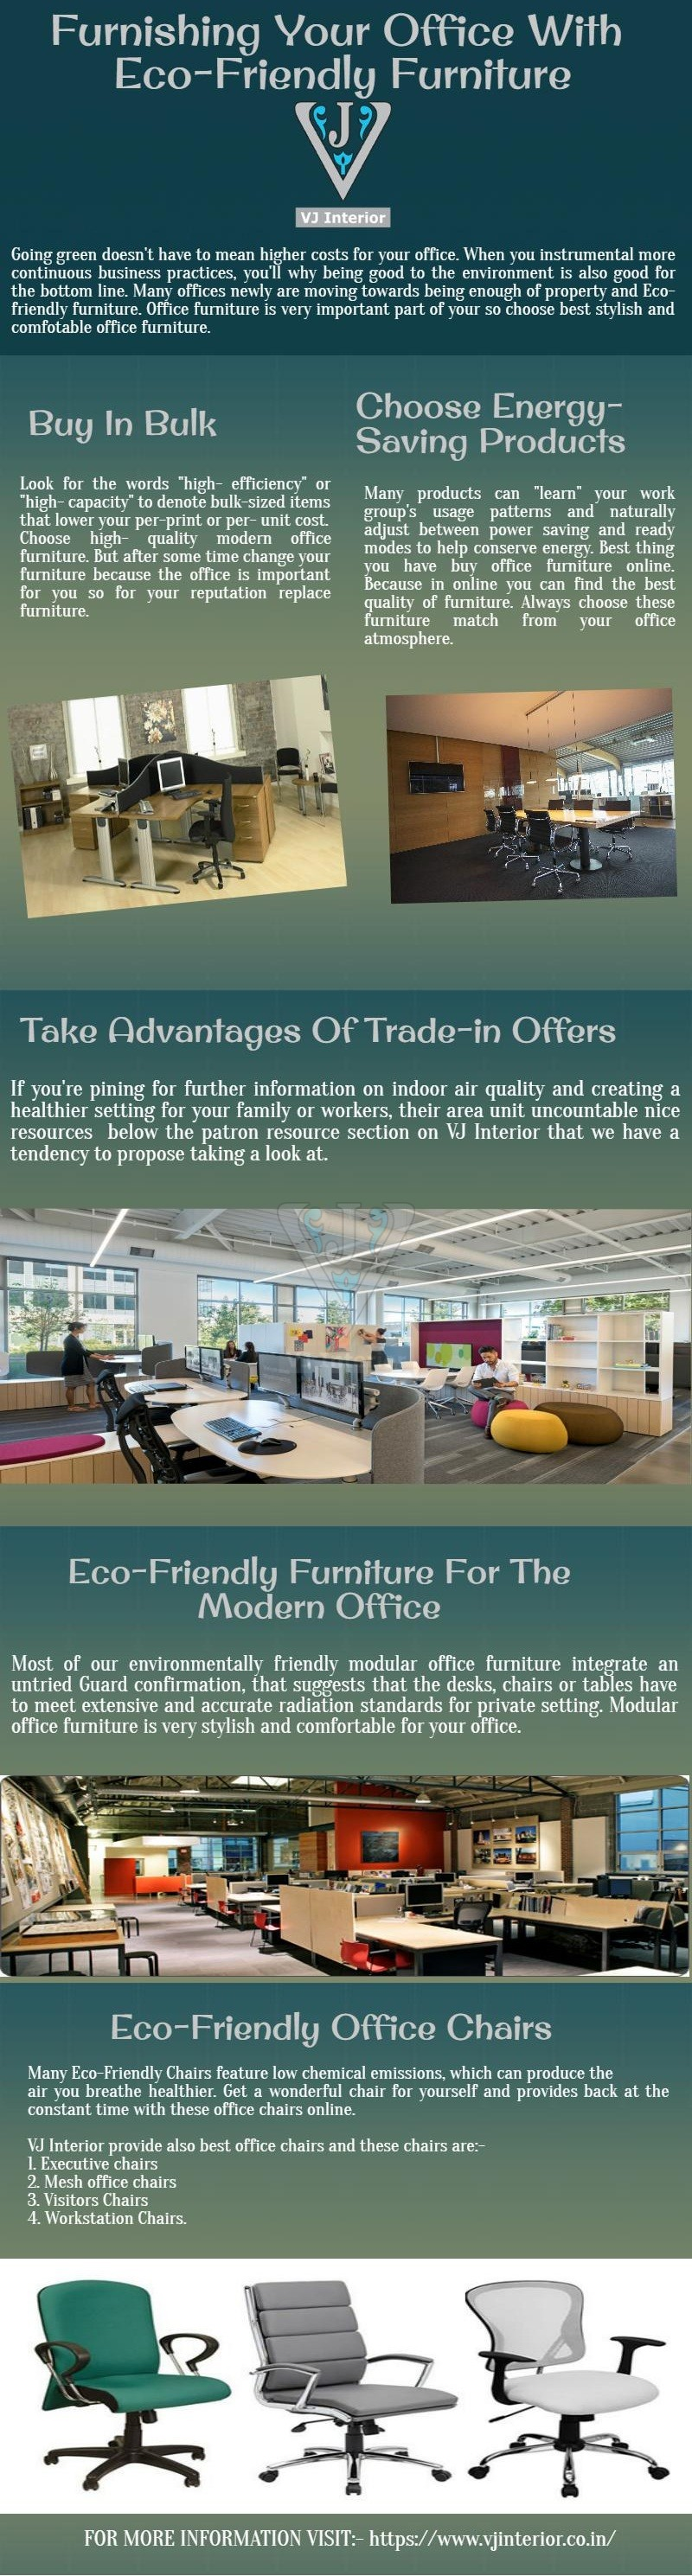 Affordable Eco Friendly Furniture